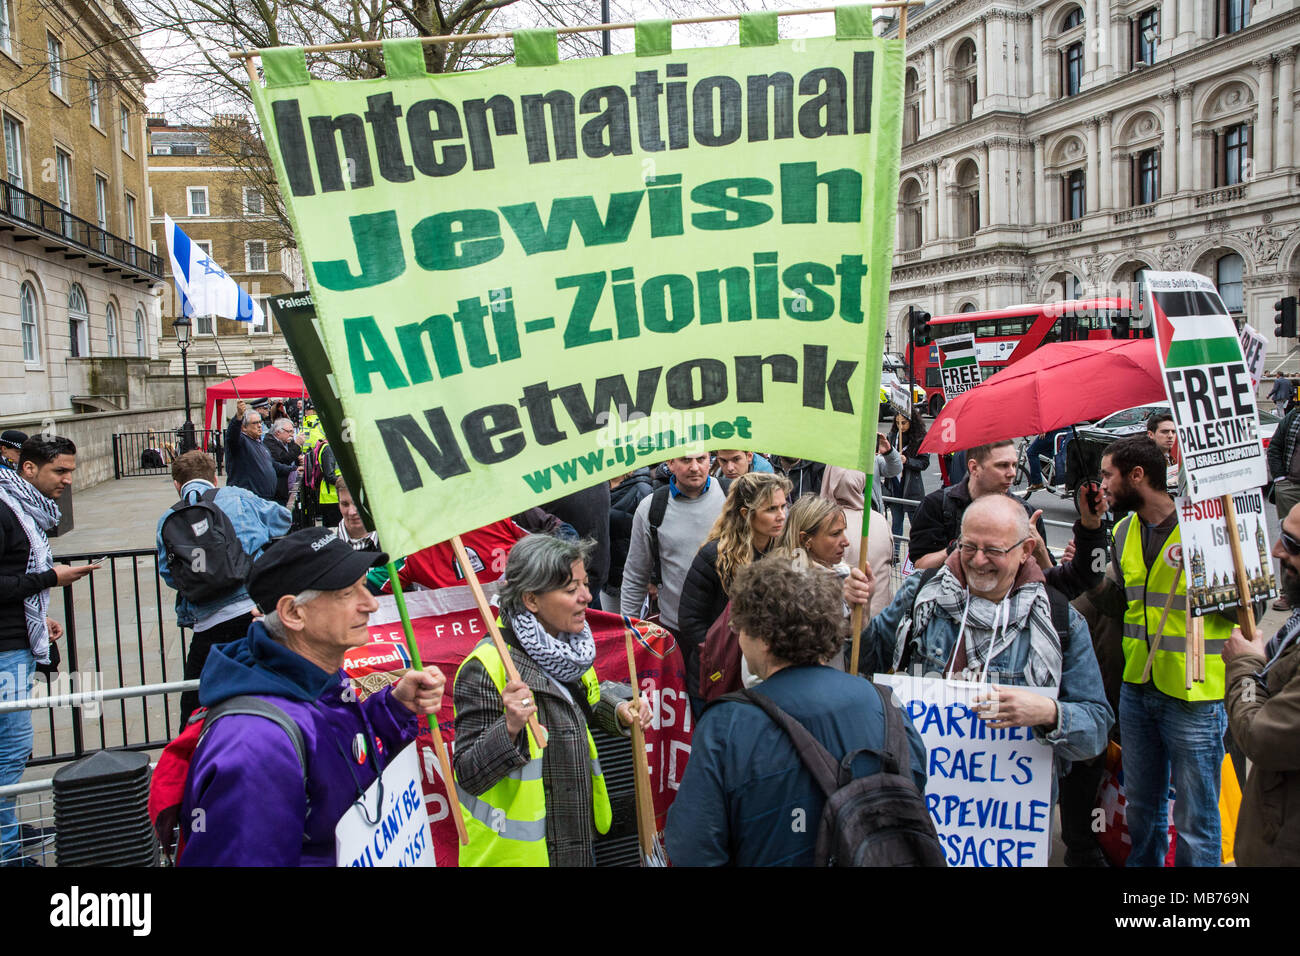 London, UK. 7th April, 2018. Activists from the International Jewish Anti-Zionist Network join hundreds of people at a rally outside Downing Street in solidarity with Palestinians attending the Great March of Return in Gaza and in protest against the killing there by Israeli snipers using live ammunition of at least 27 unarmed Palestinians and the injury of hundreds more. Credit: Mark Kerrison/Alamy Live News - Stock Image